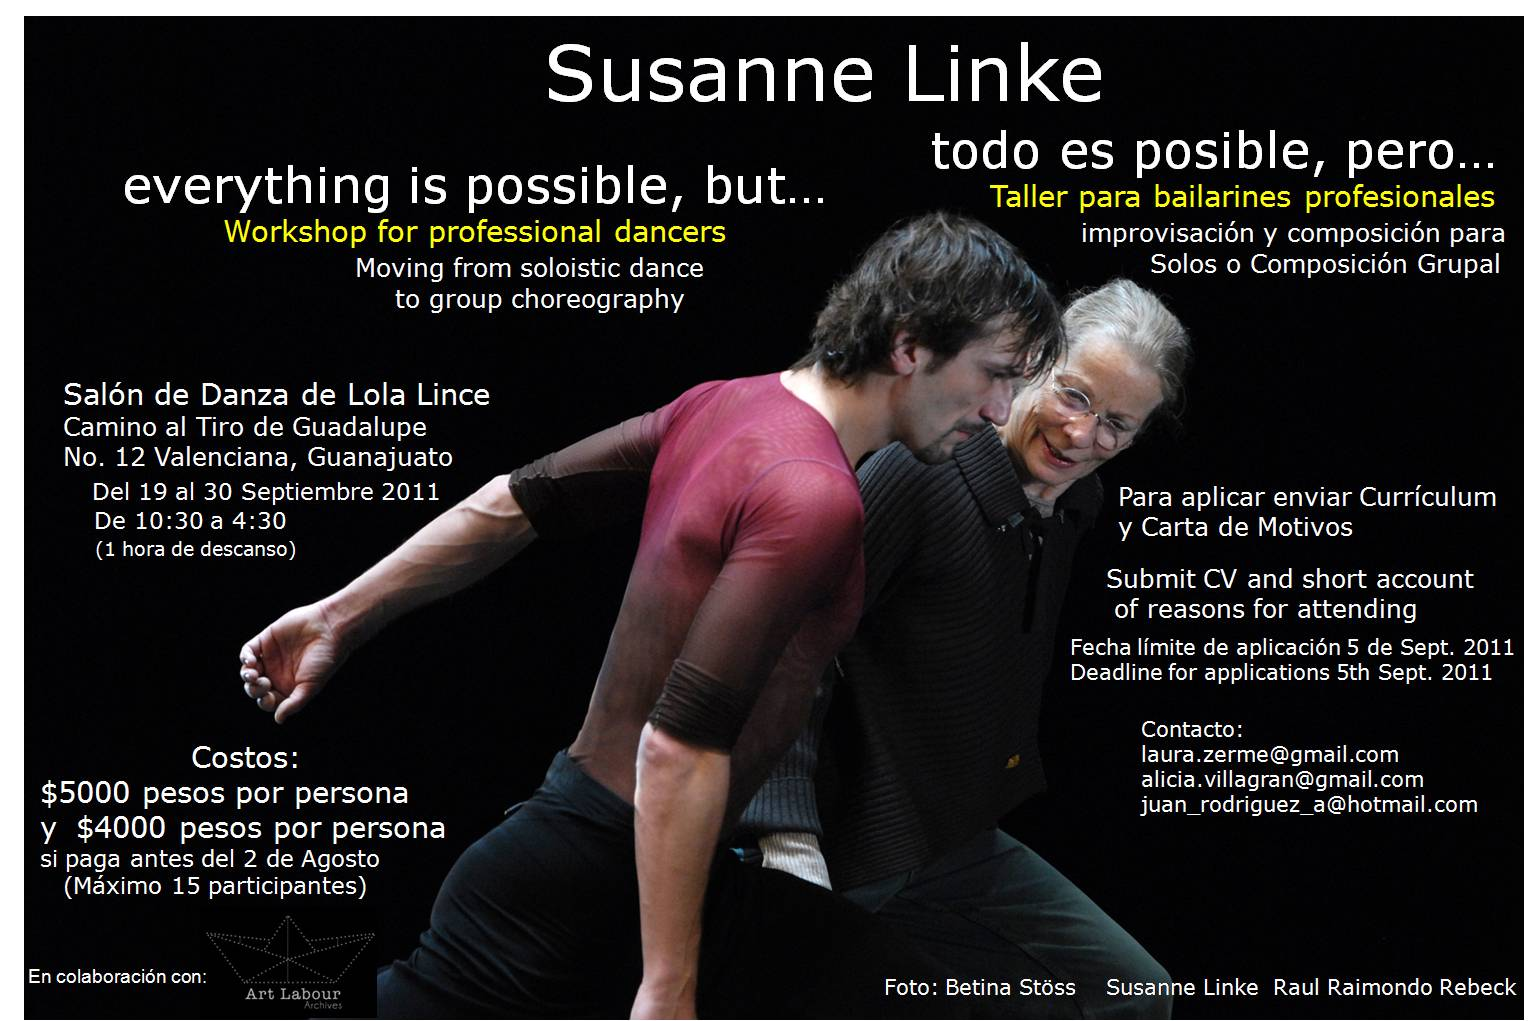 SUSANNE LINKE EN MEXICO